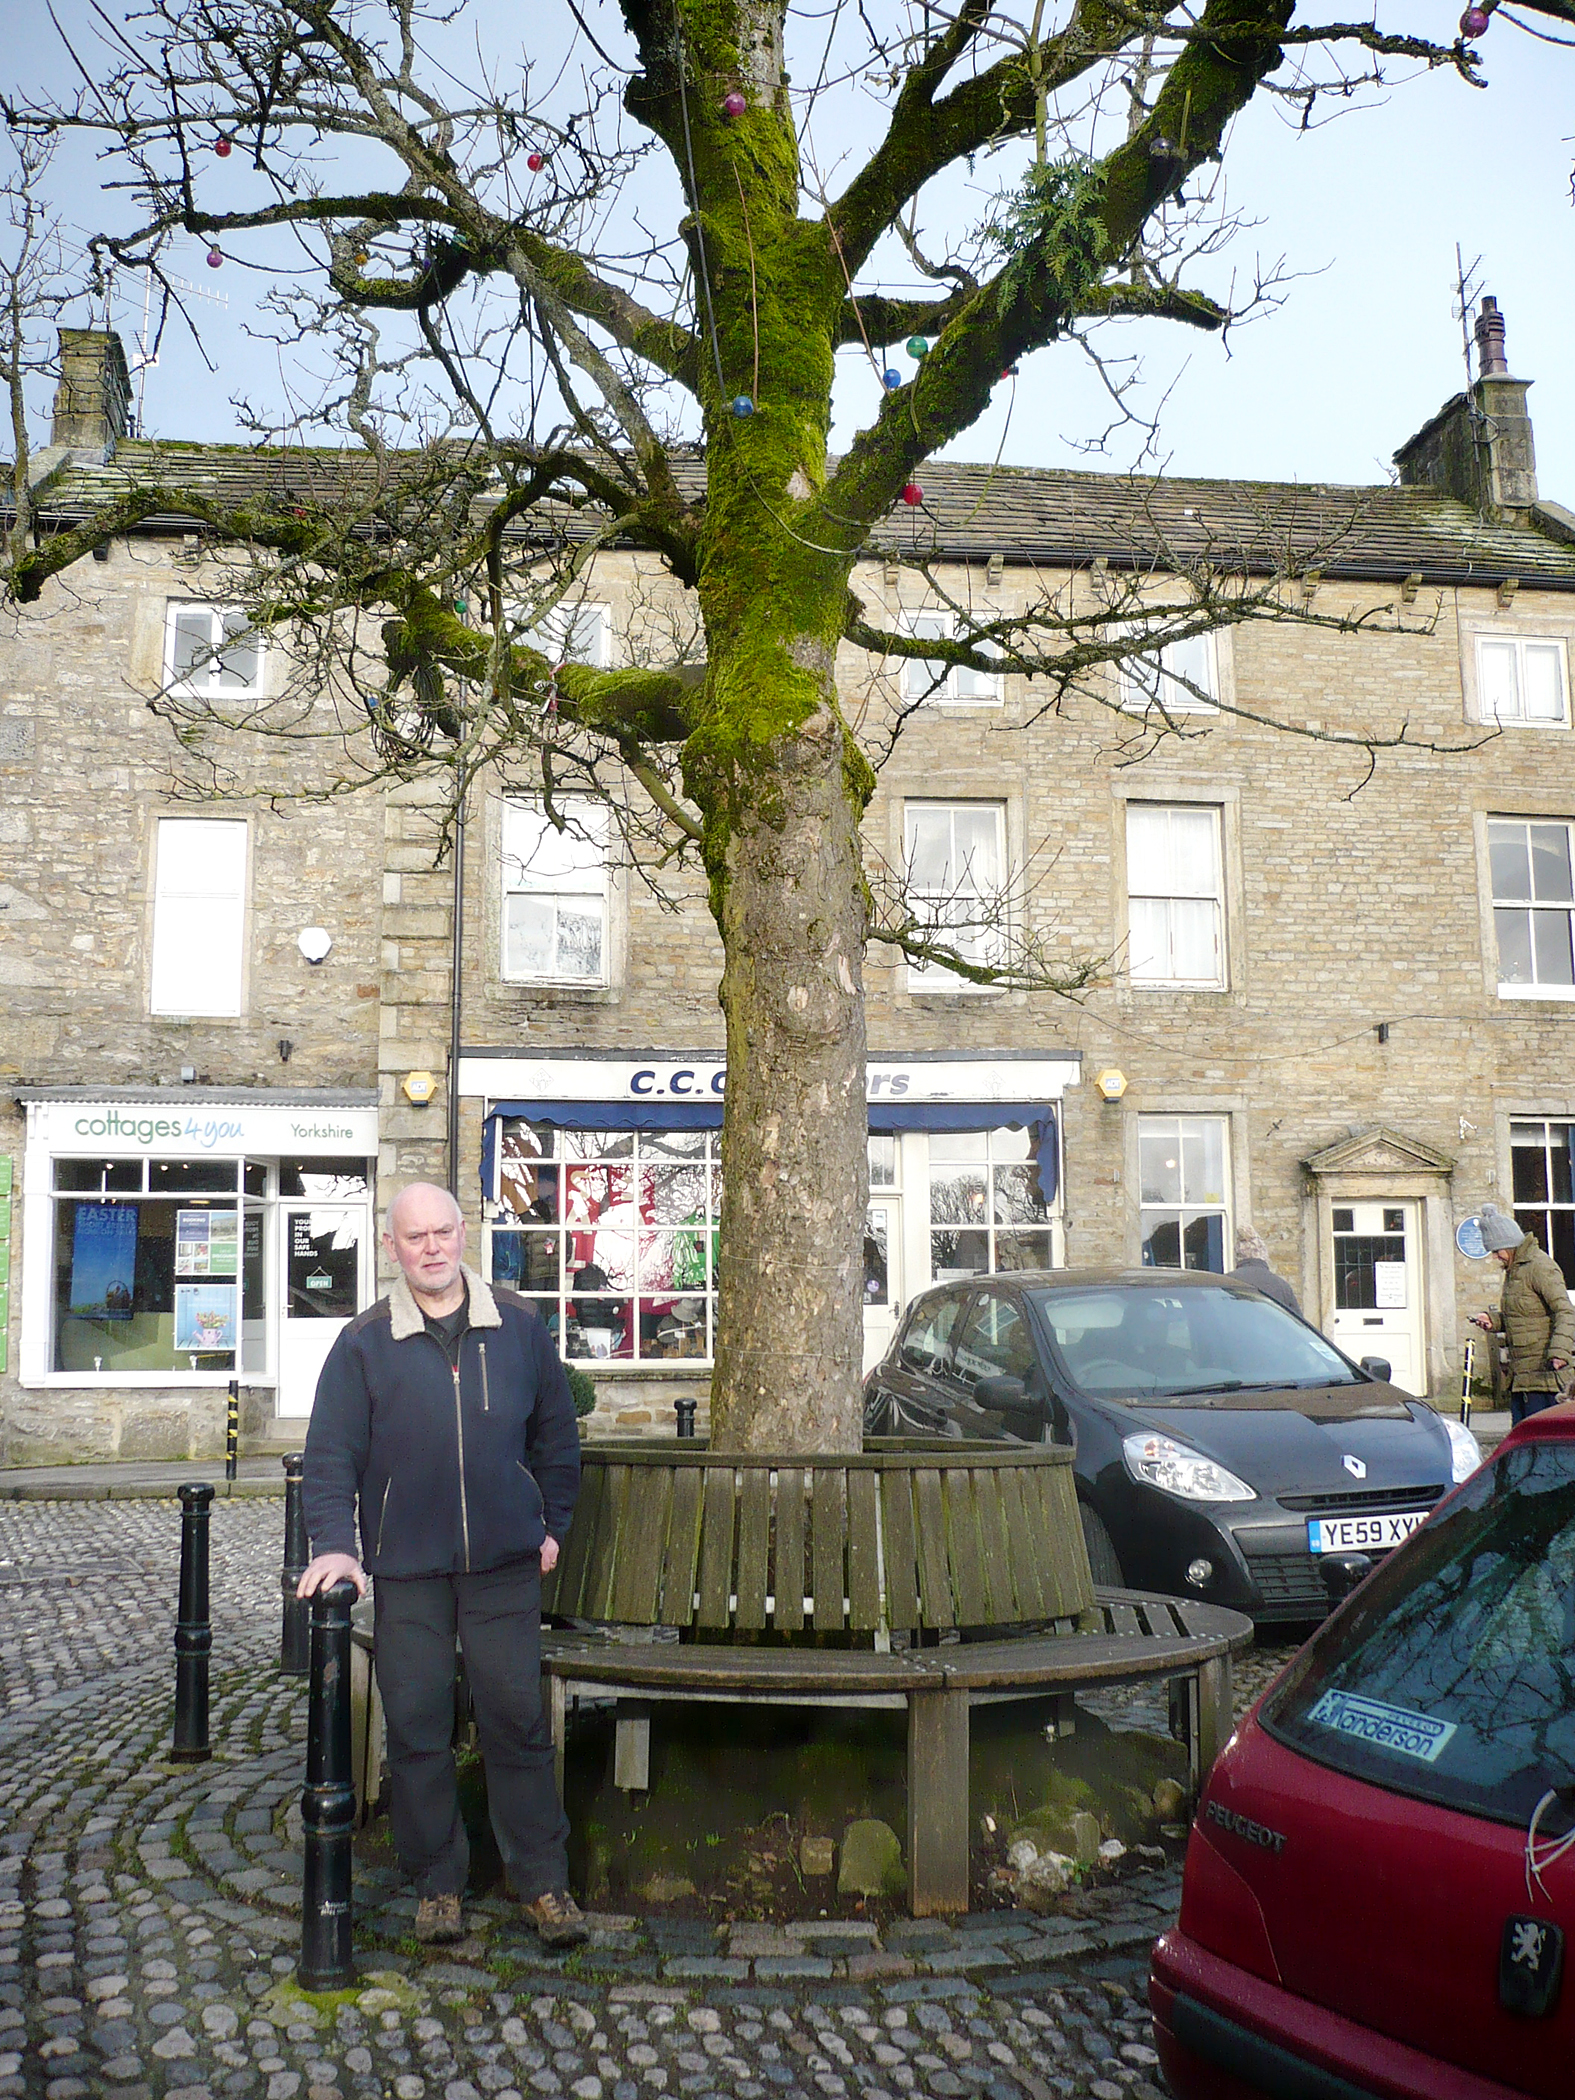 Grassington Parish Council chairman Michaeol Rooze in front of the landmark sycamore tree which i